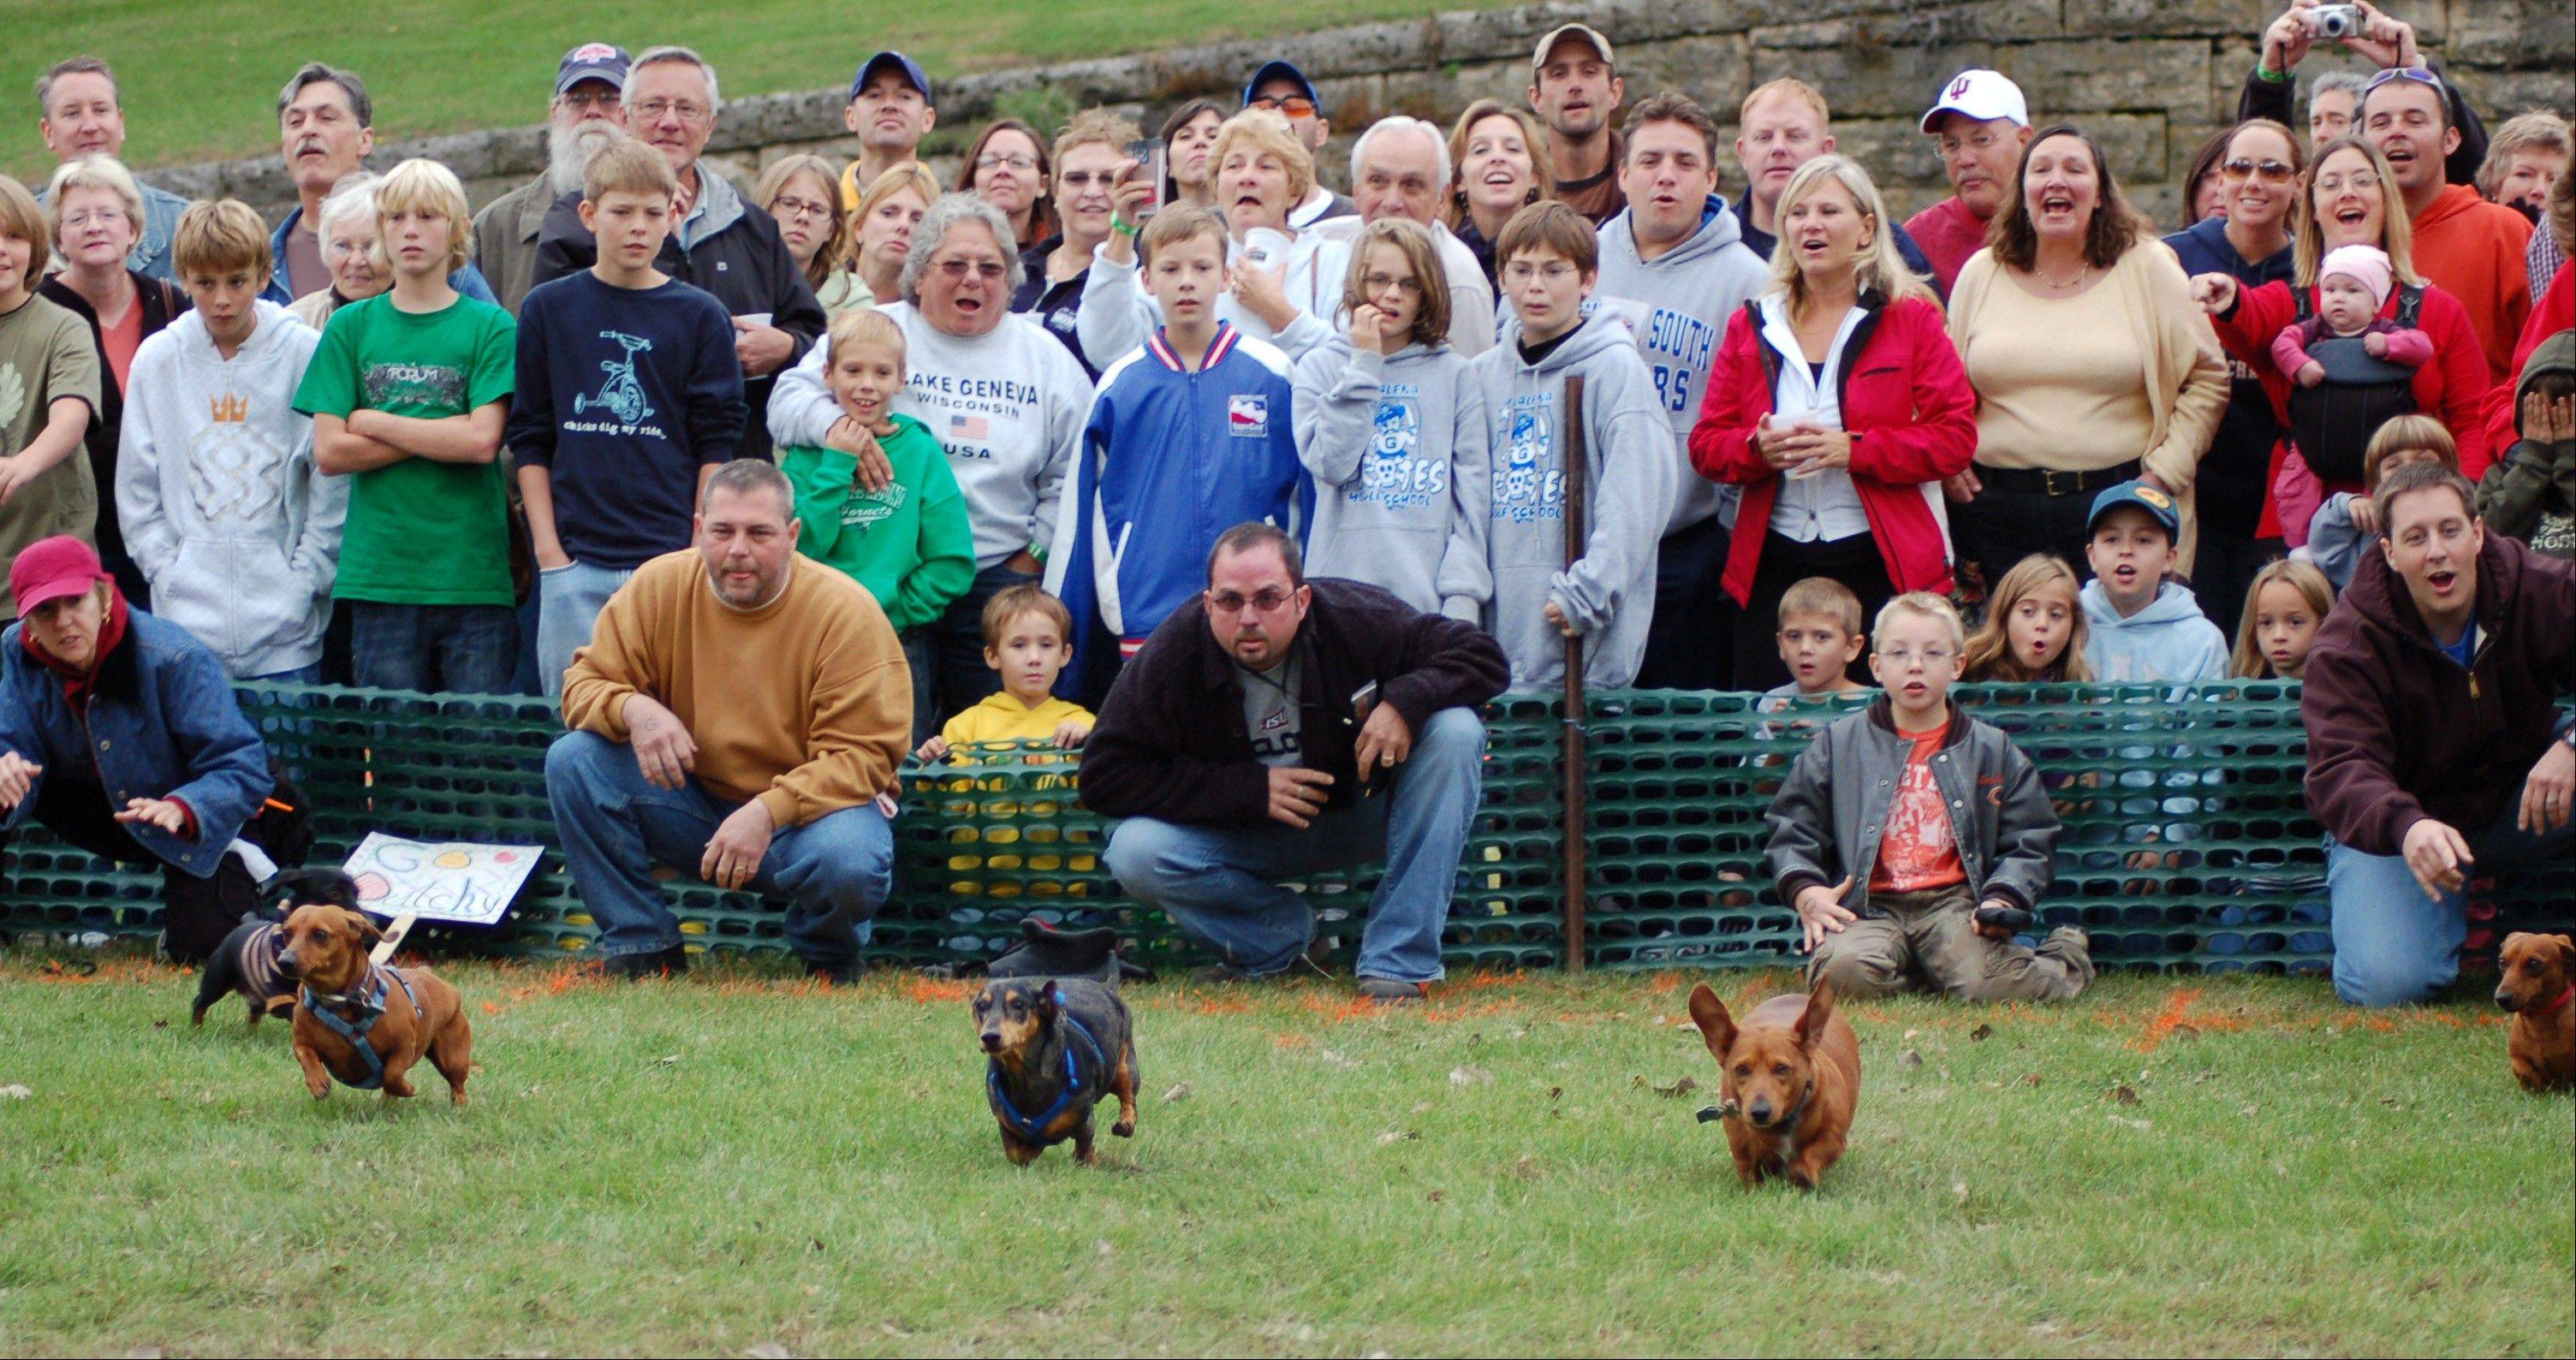 Onlookers cheer on their favorite wiener dog in the championship race at the Galena Oktoberfest, Sept. 22.